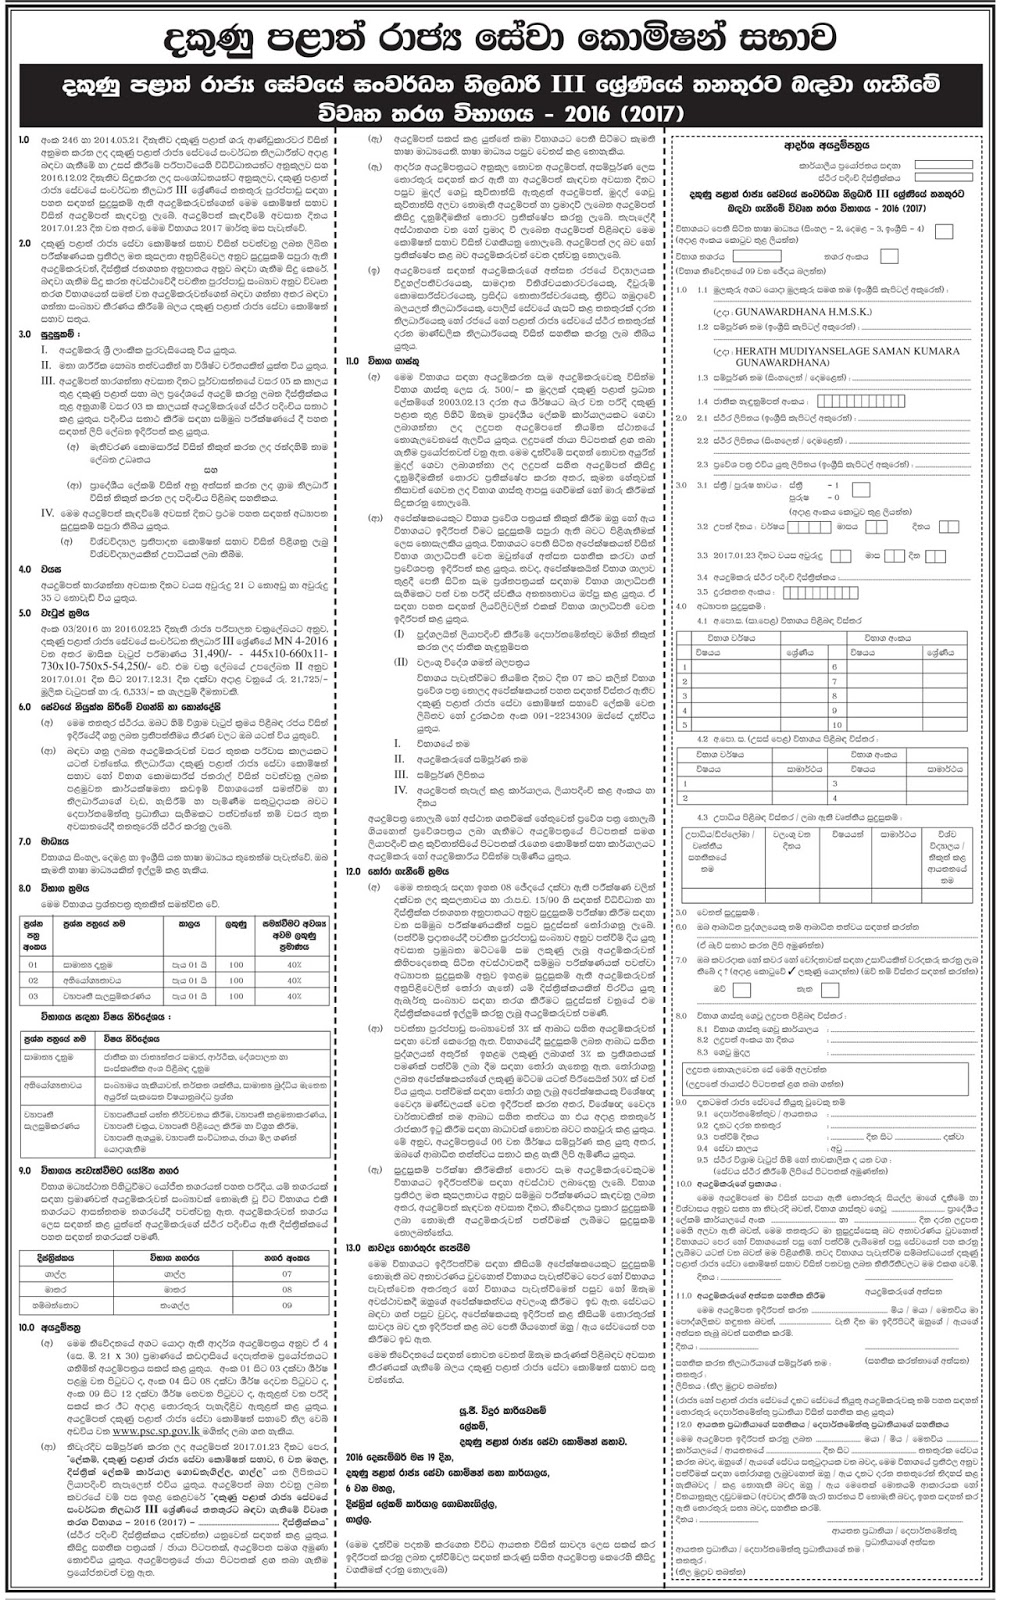 Sri Lankan Government Job Vacancies at Southern Provincial Public Service for the post of Development Officer